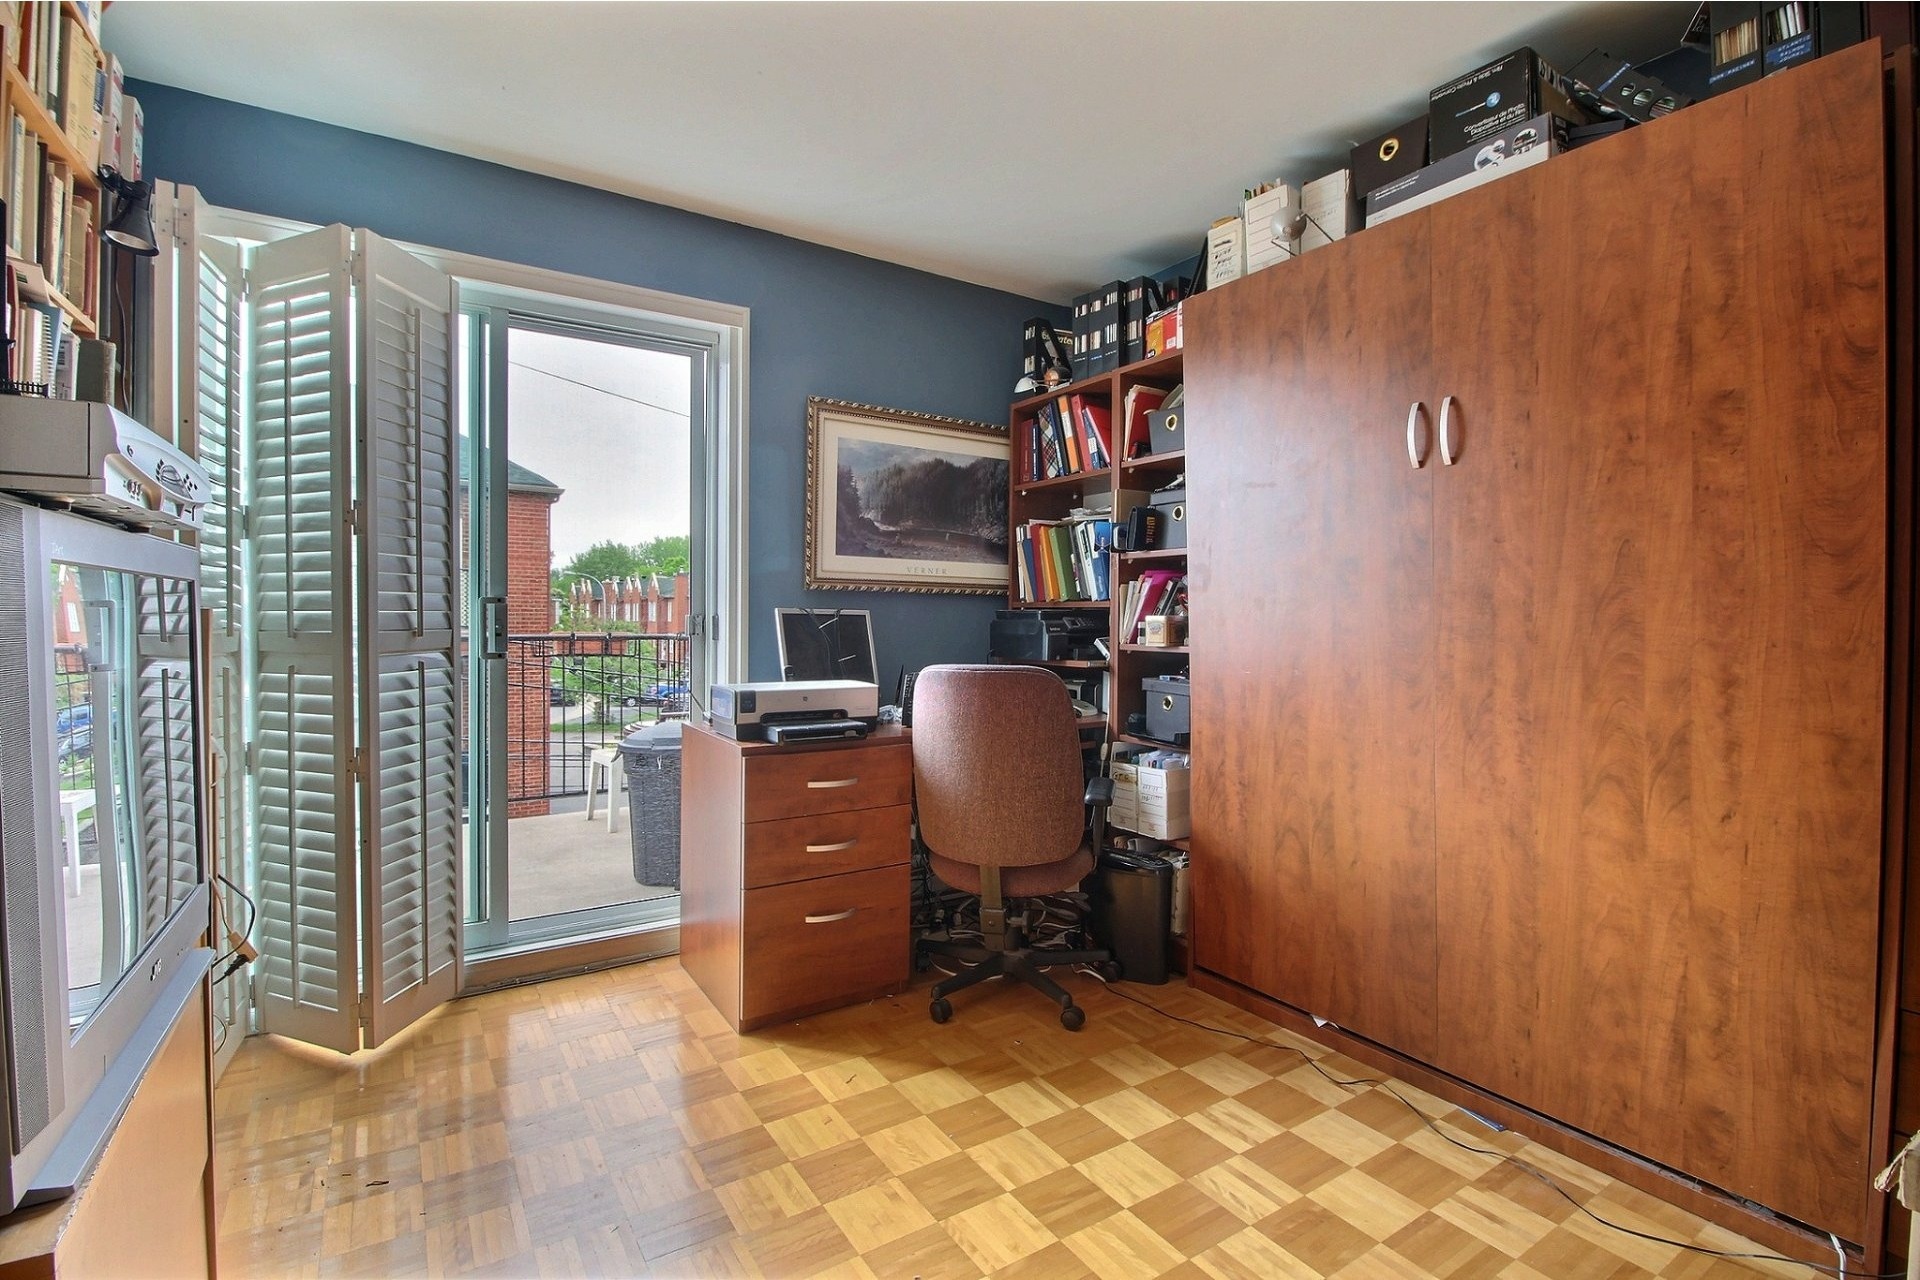 image 10 - Apartment For sale Montréal LaSalle  - 6 rooms